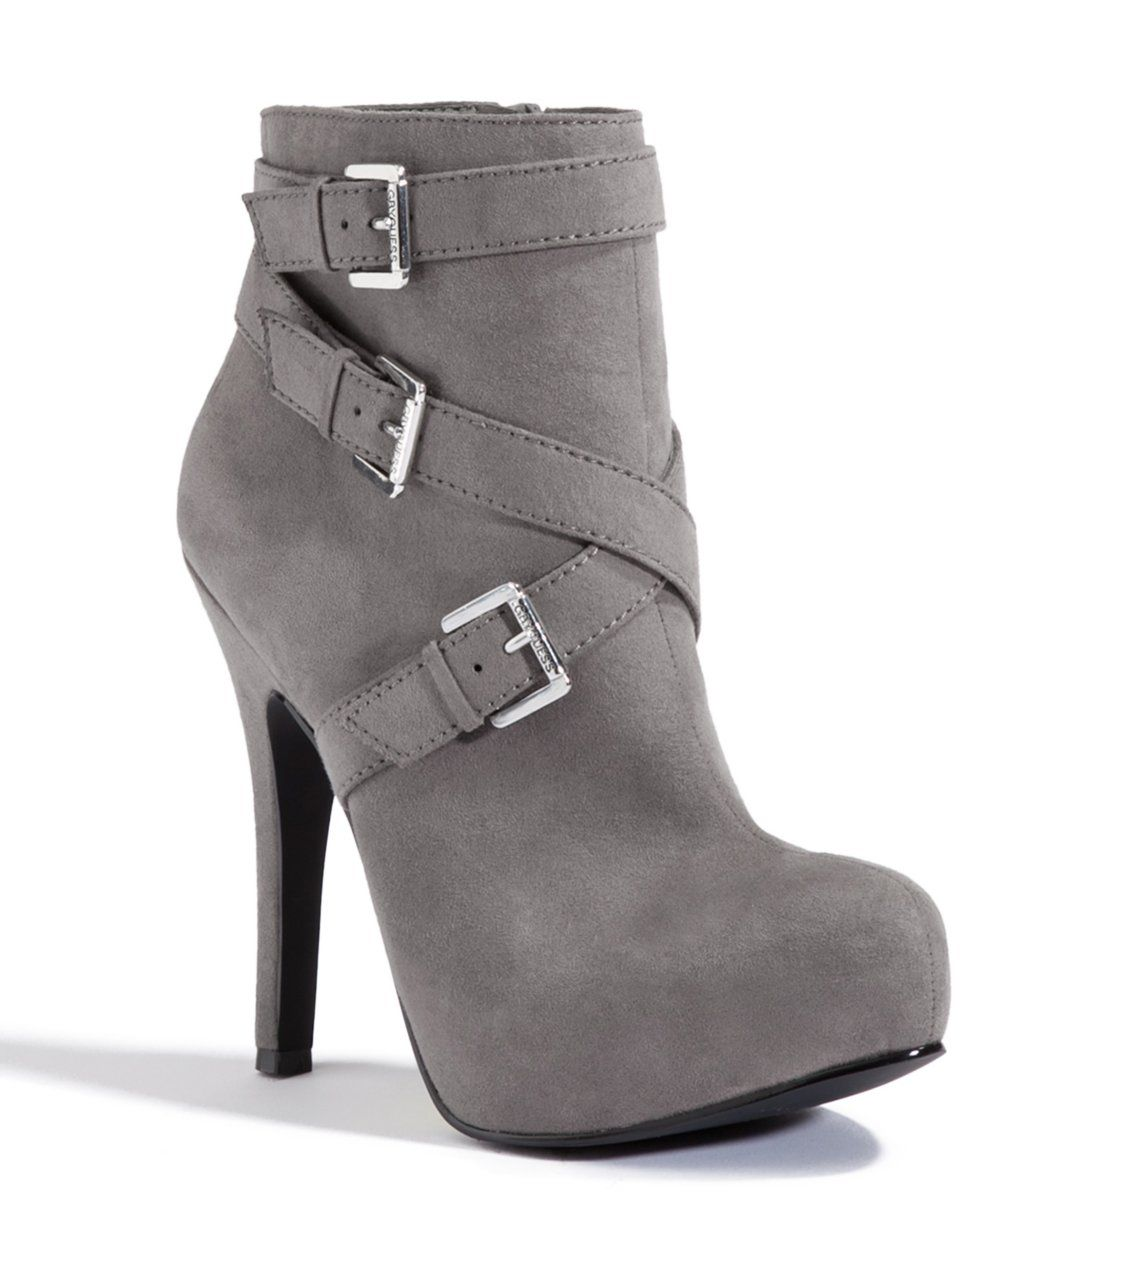 G by GUESS Gileza Ankle Booties